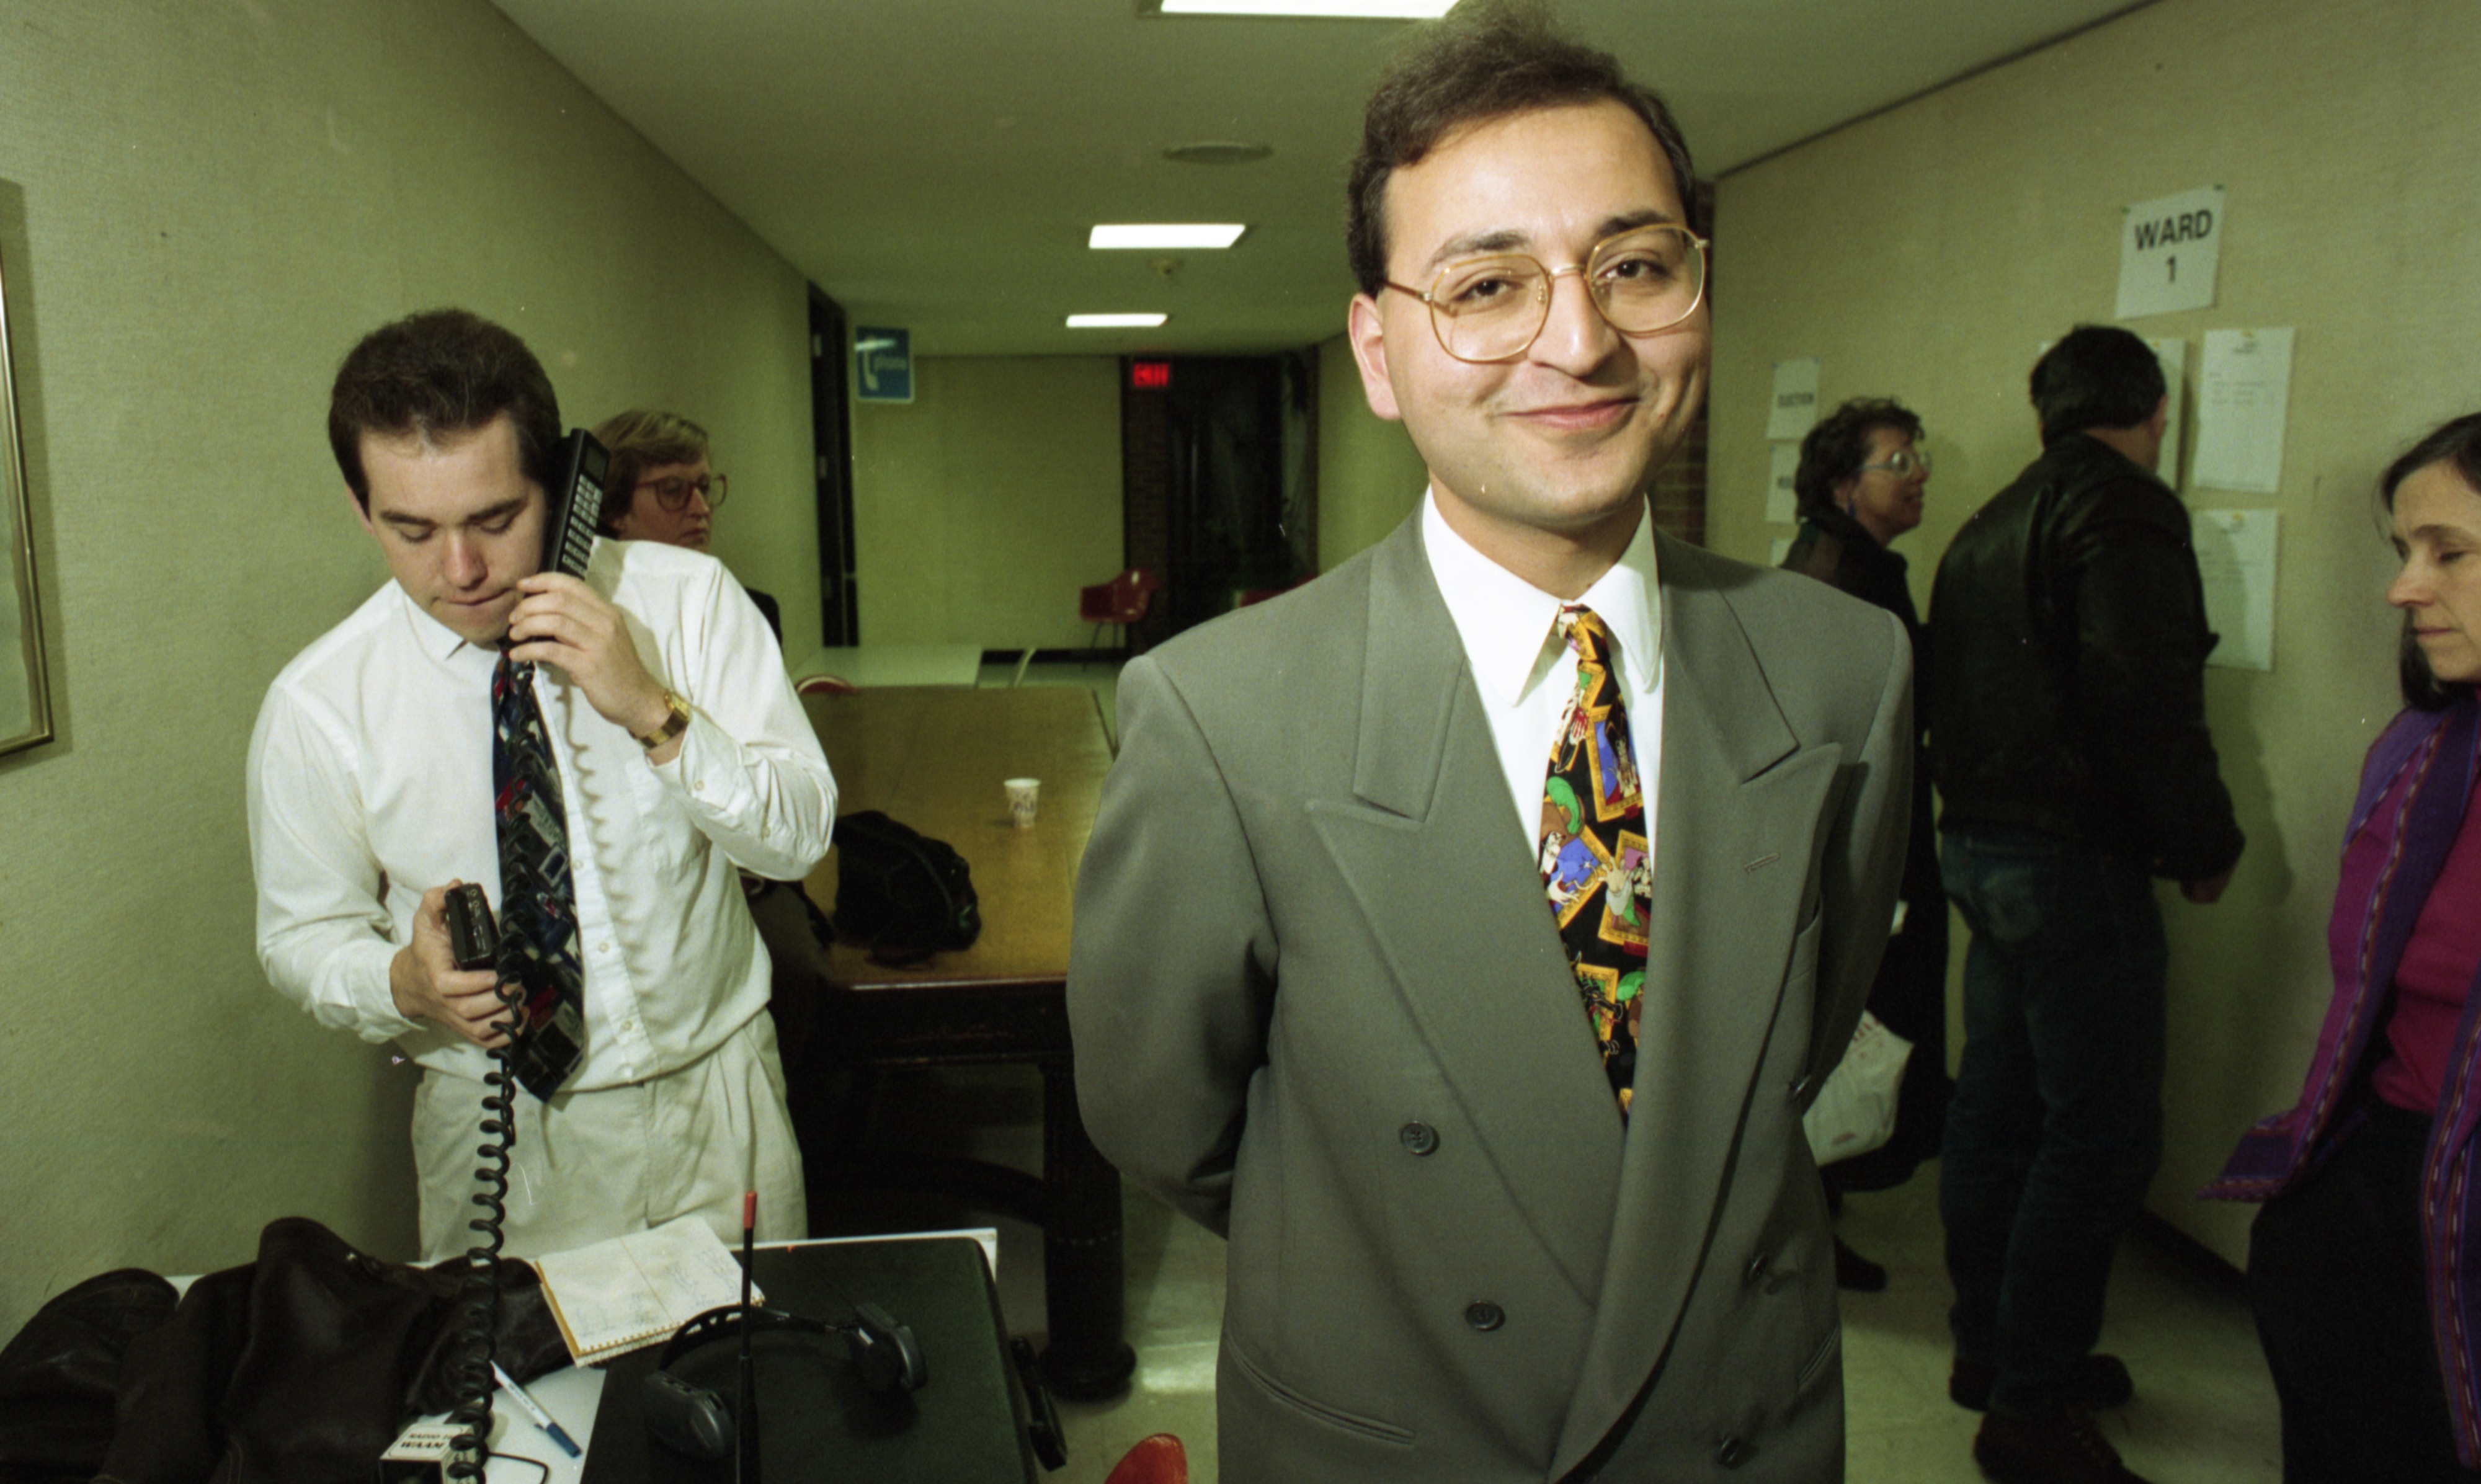 Peter Nicolas, Ann Arbor City Council Elections, November 1993 image